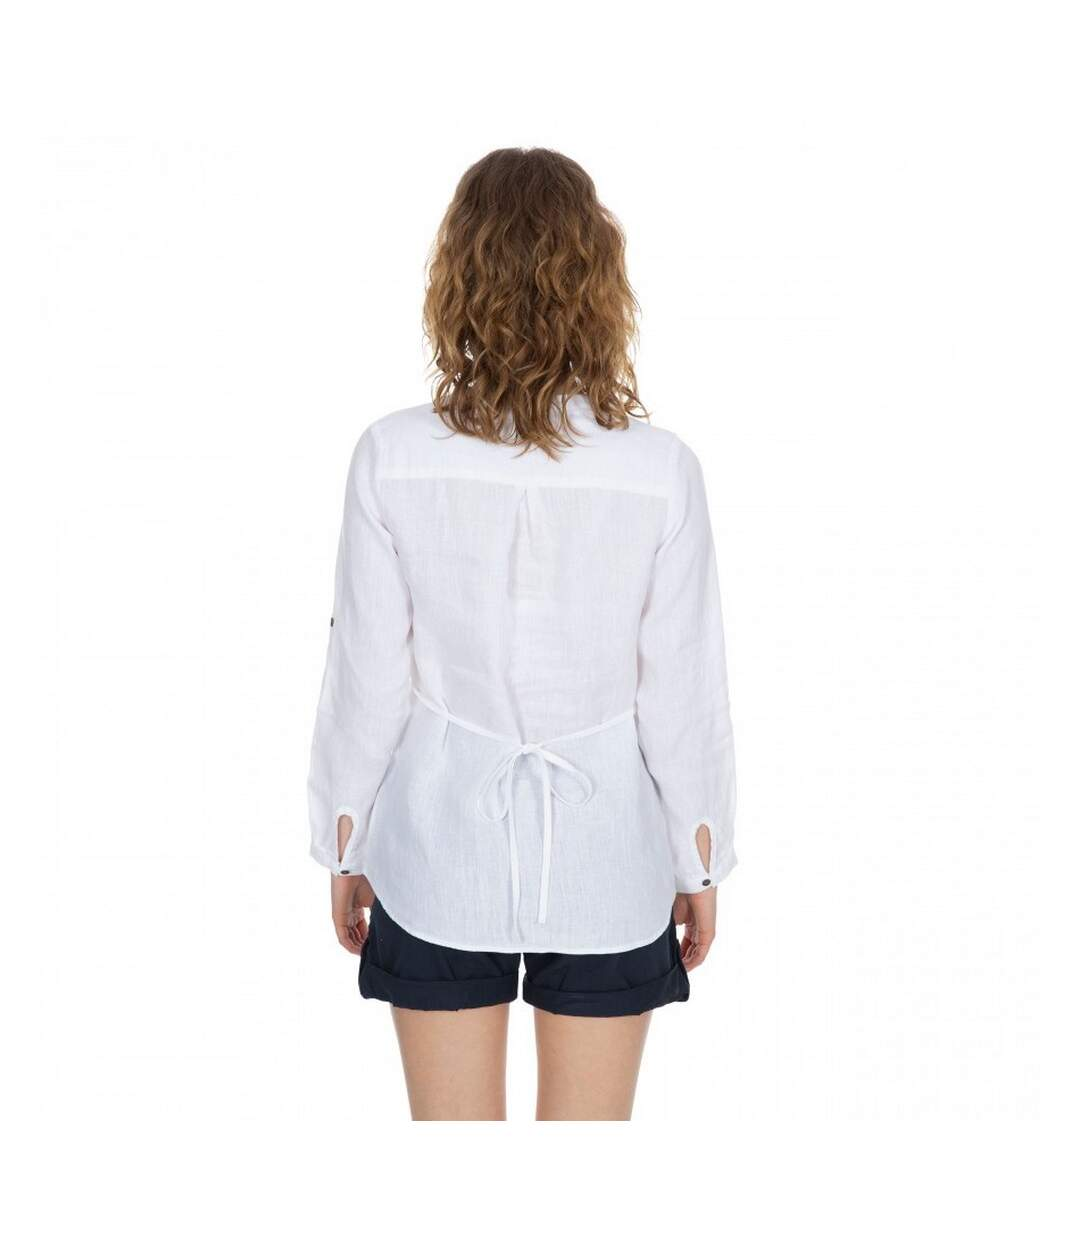 Trespass - Blouse Messina - Femme (Blanc) - UTTP4705